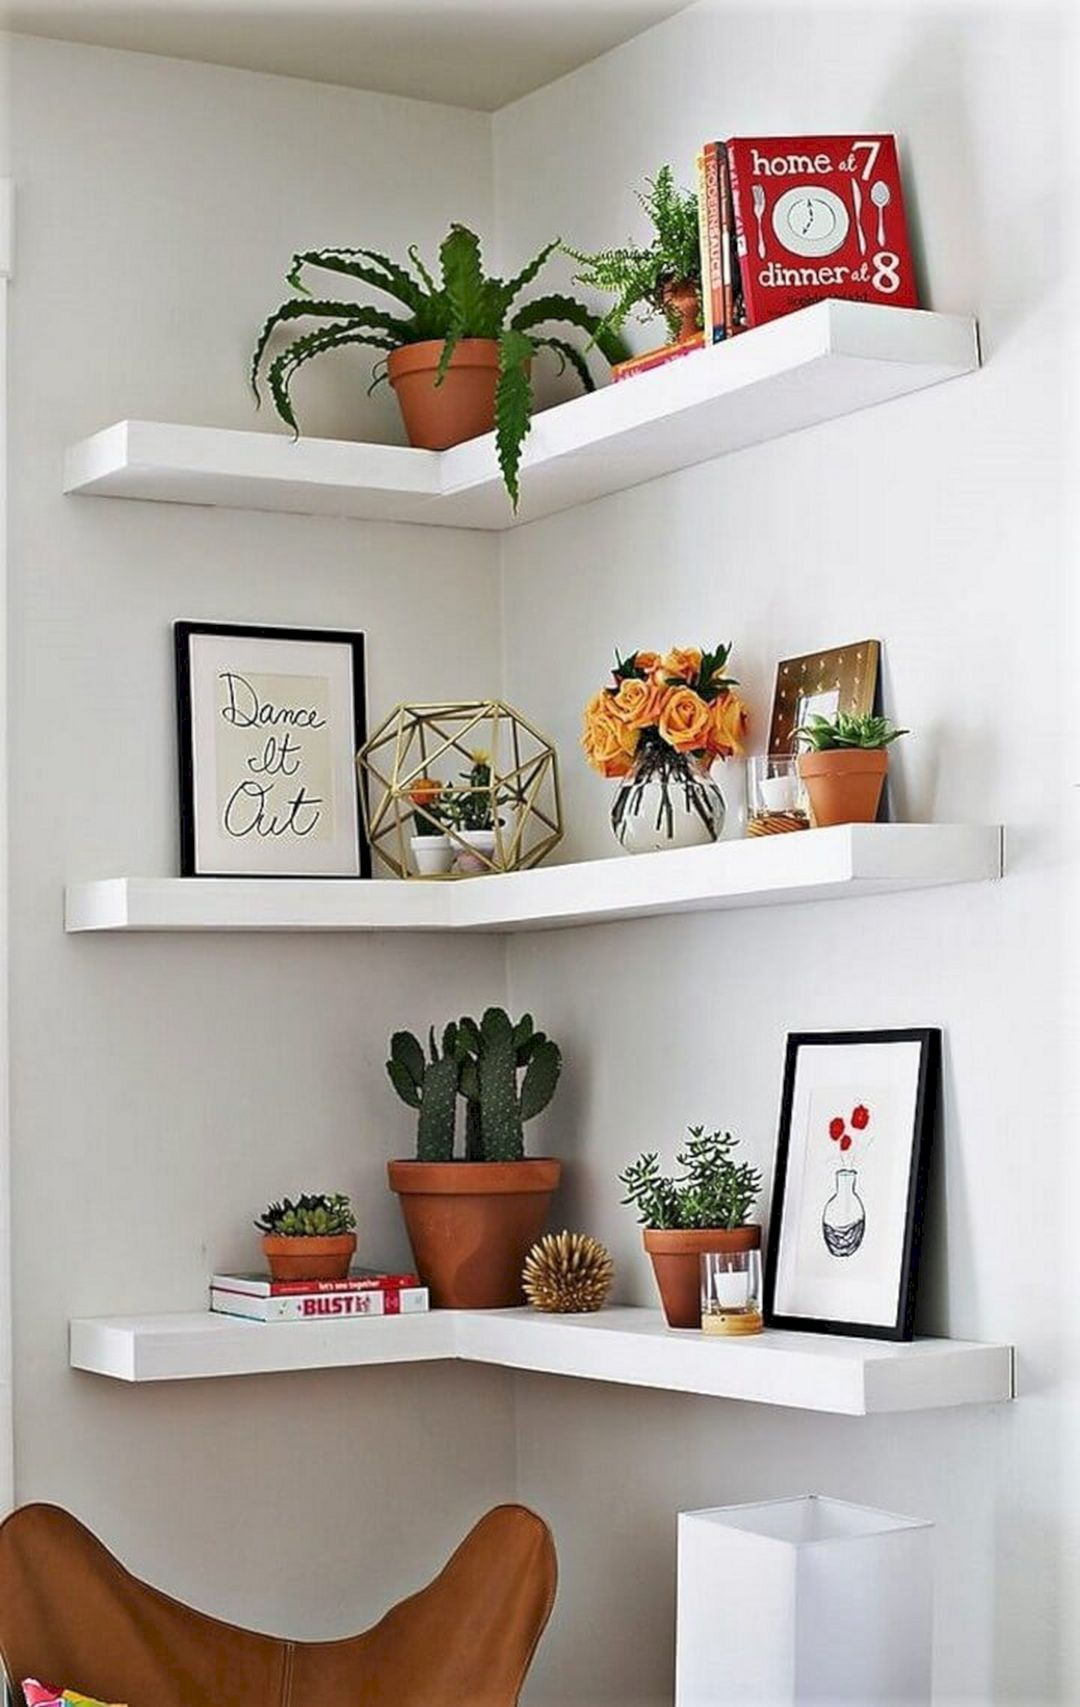 20 Corner Cabinet Ideas That Optimize Your Kitchen Space In 2020 Corner Decor Wall Mounted Corner Shelves Corner Wall Shelves